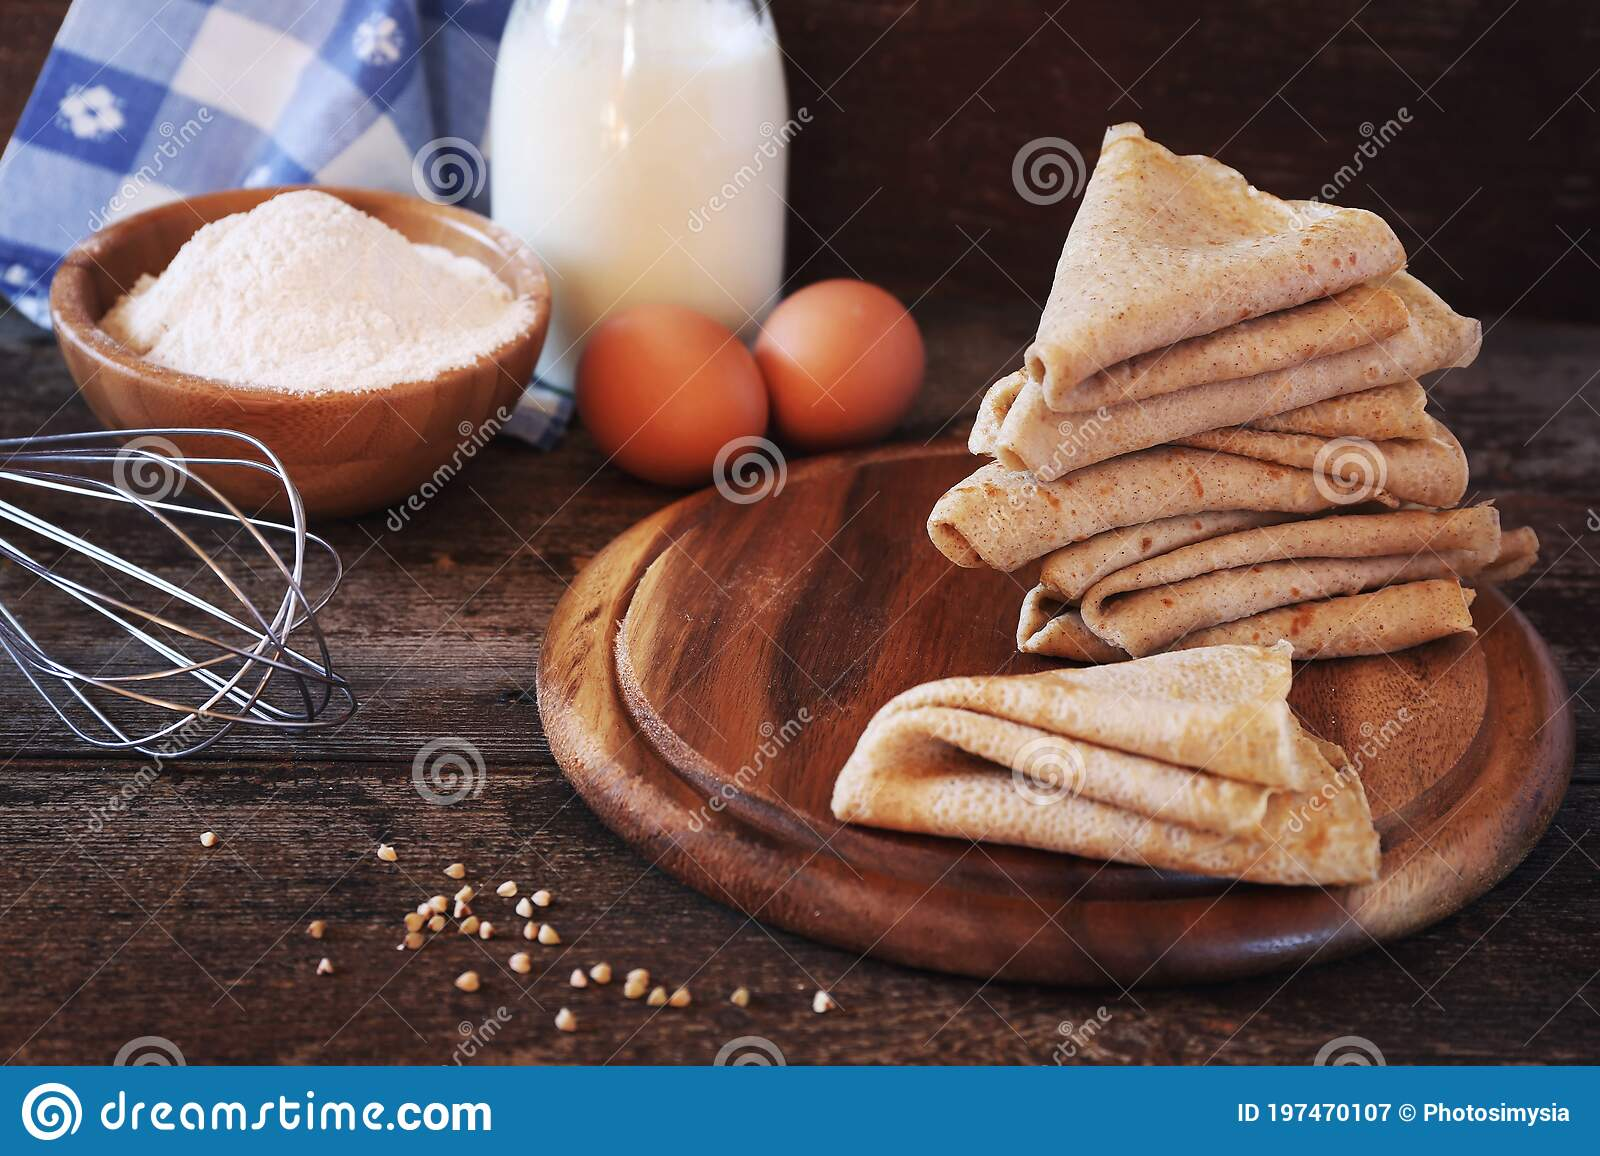 French Cuisine Breton Buckwheat Crepes And Their Ingredients Stock Image Image Of French Pancakes 197470107